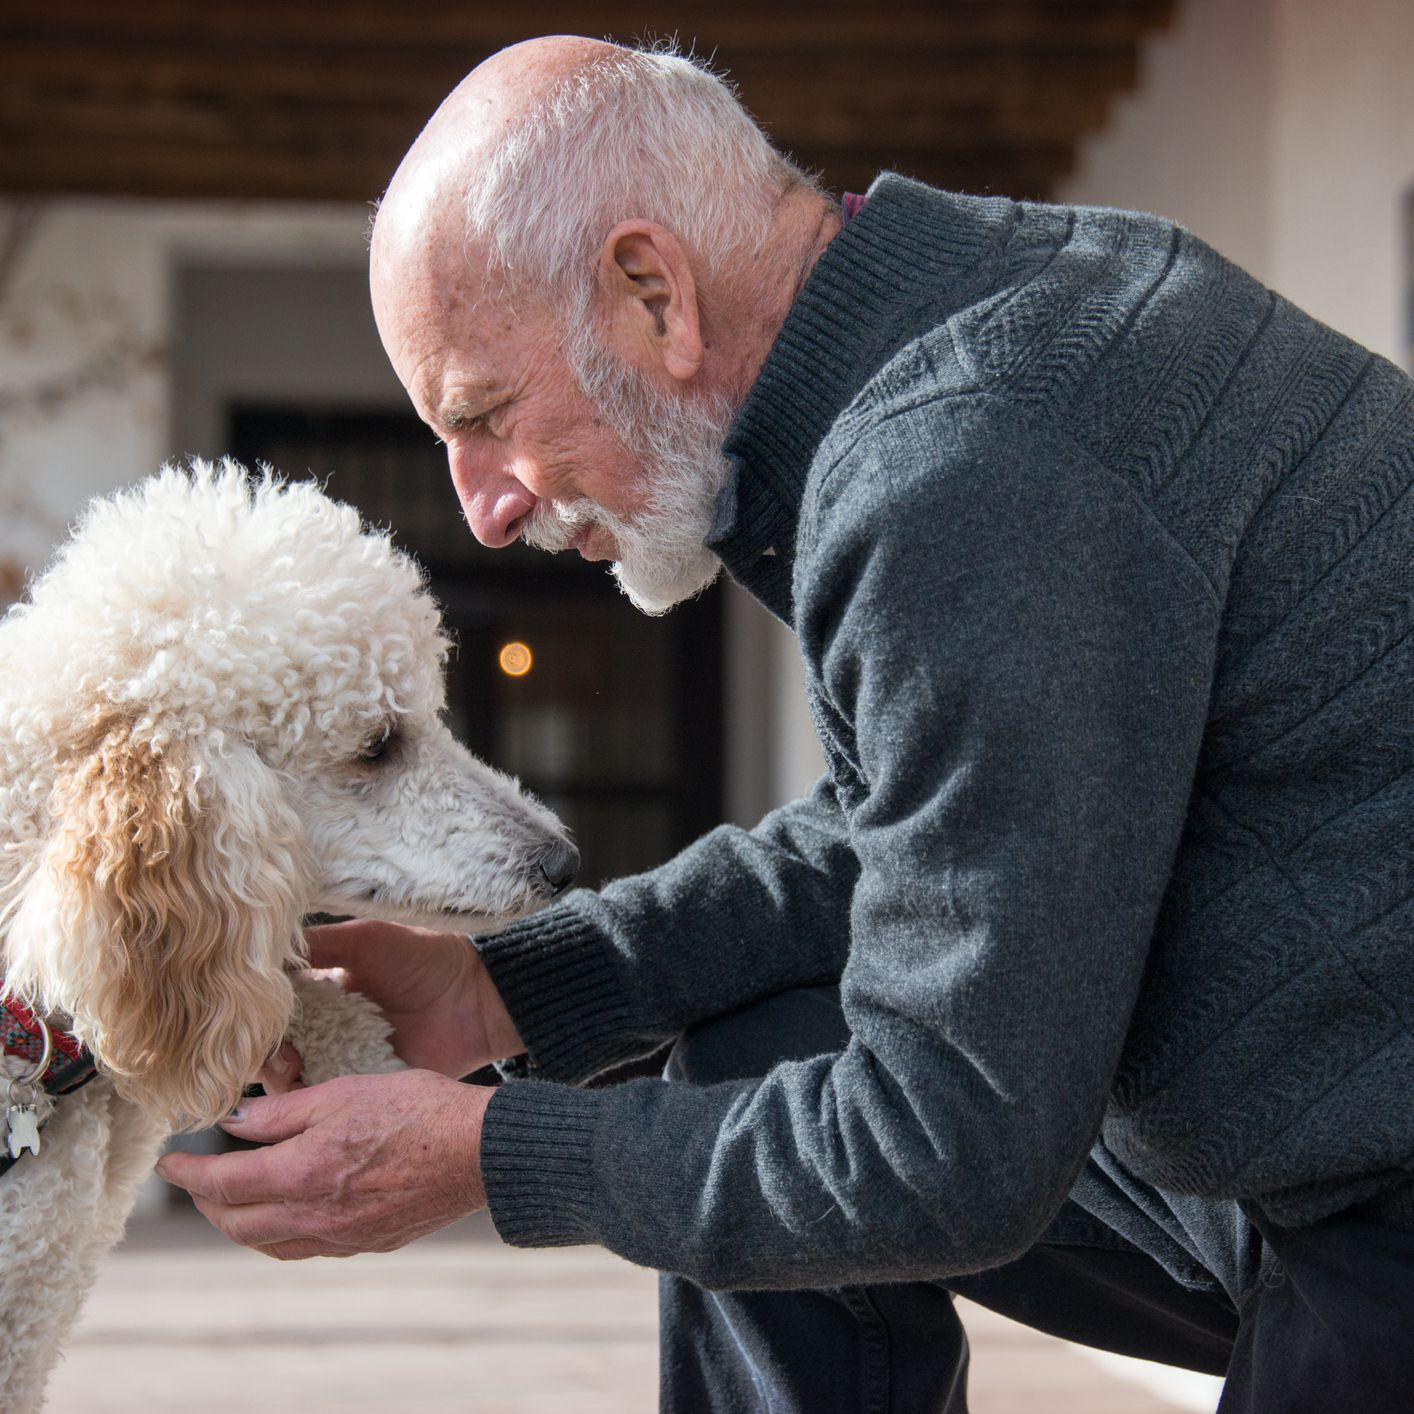 Therapy Dogs to Improve Mental and Physical Health